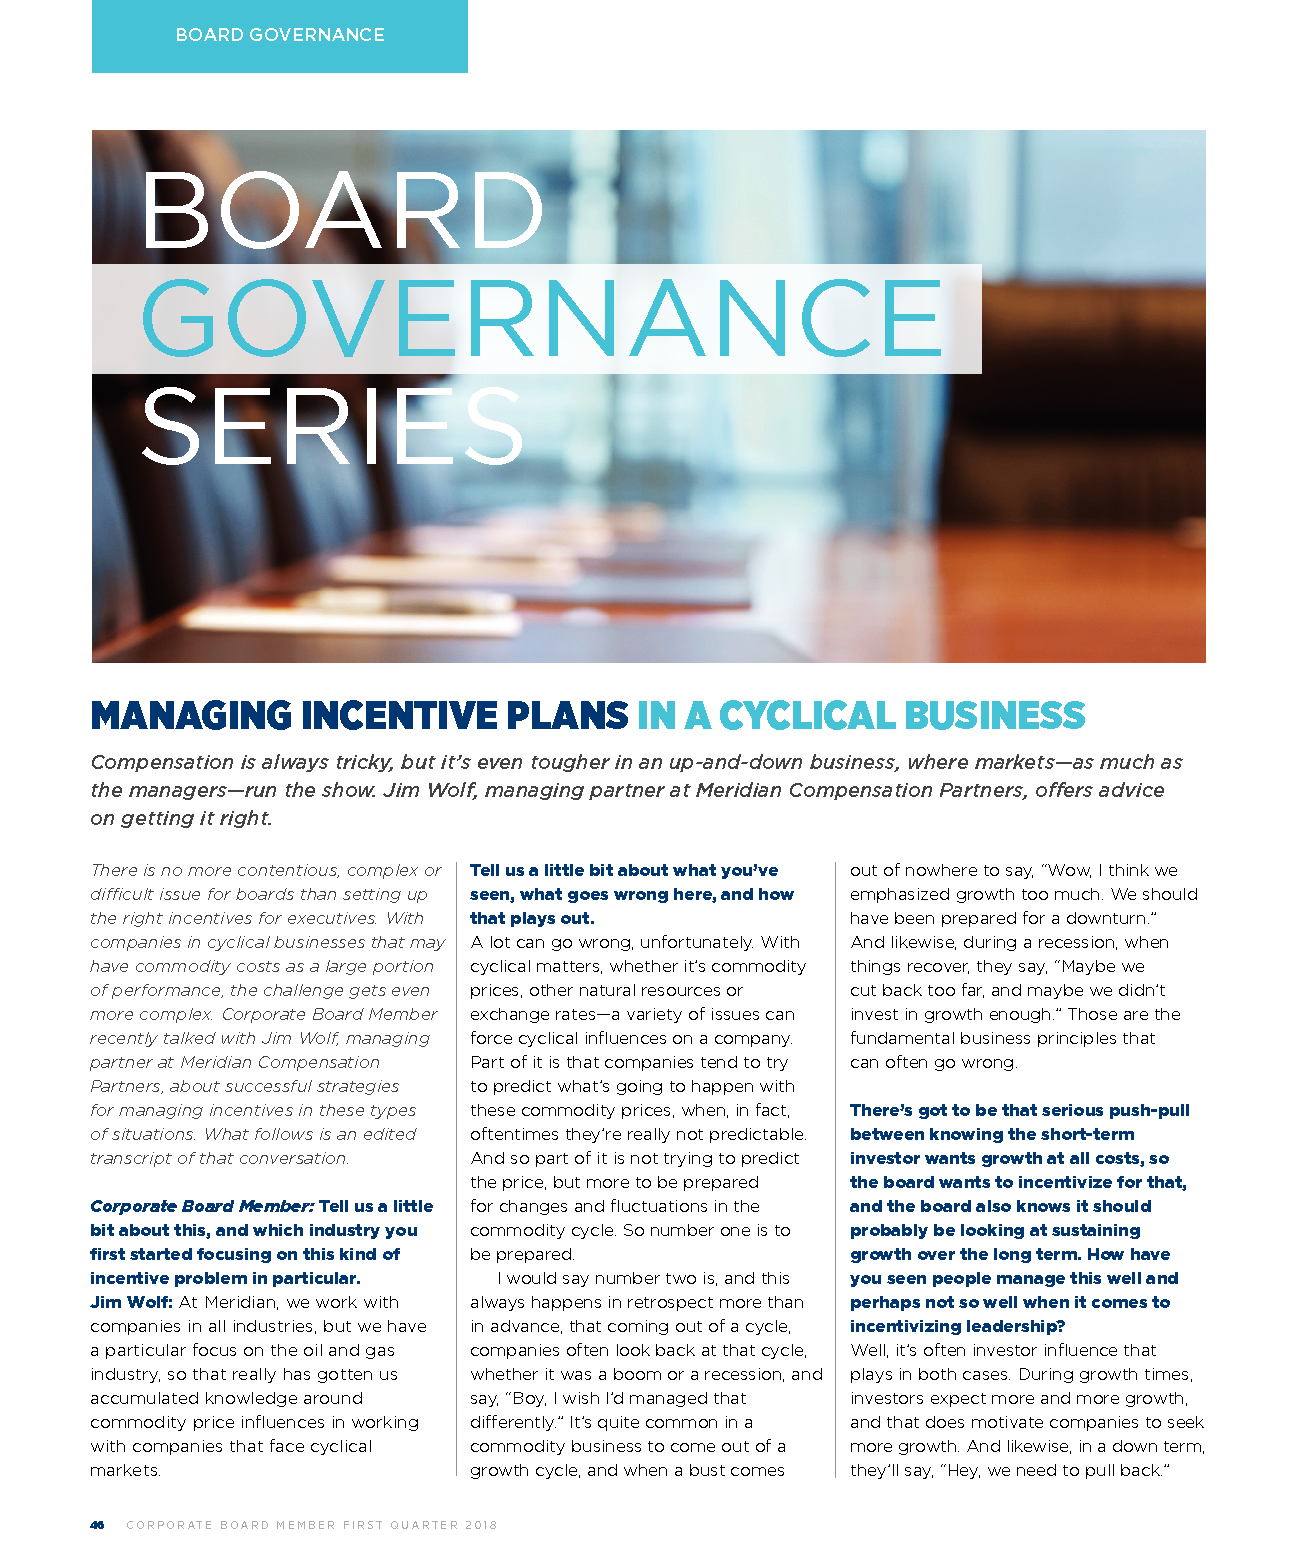 Managing Incentive Plans in a Cyclical Business (PDF)